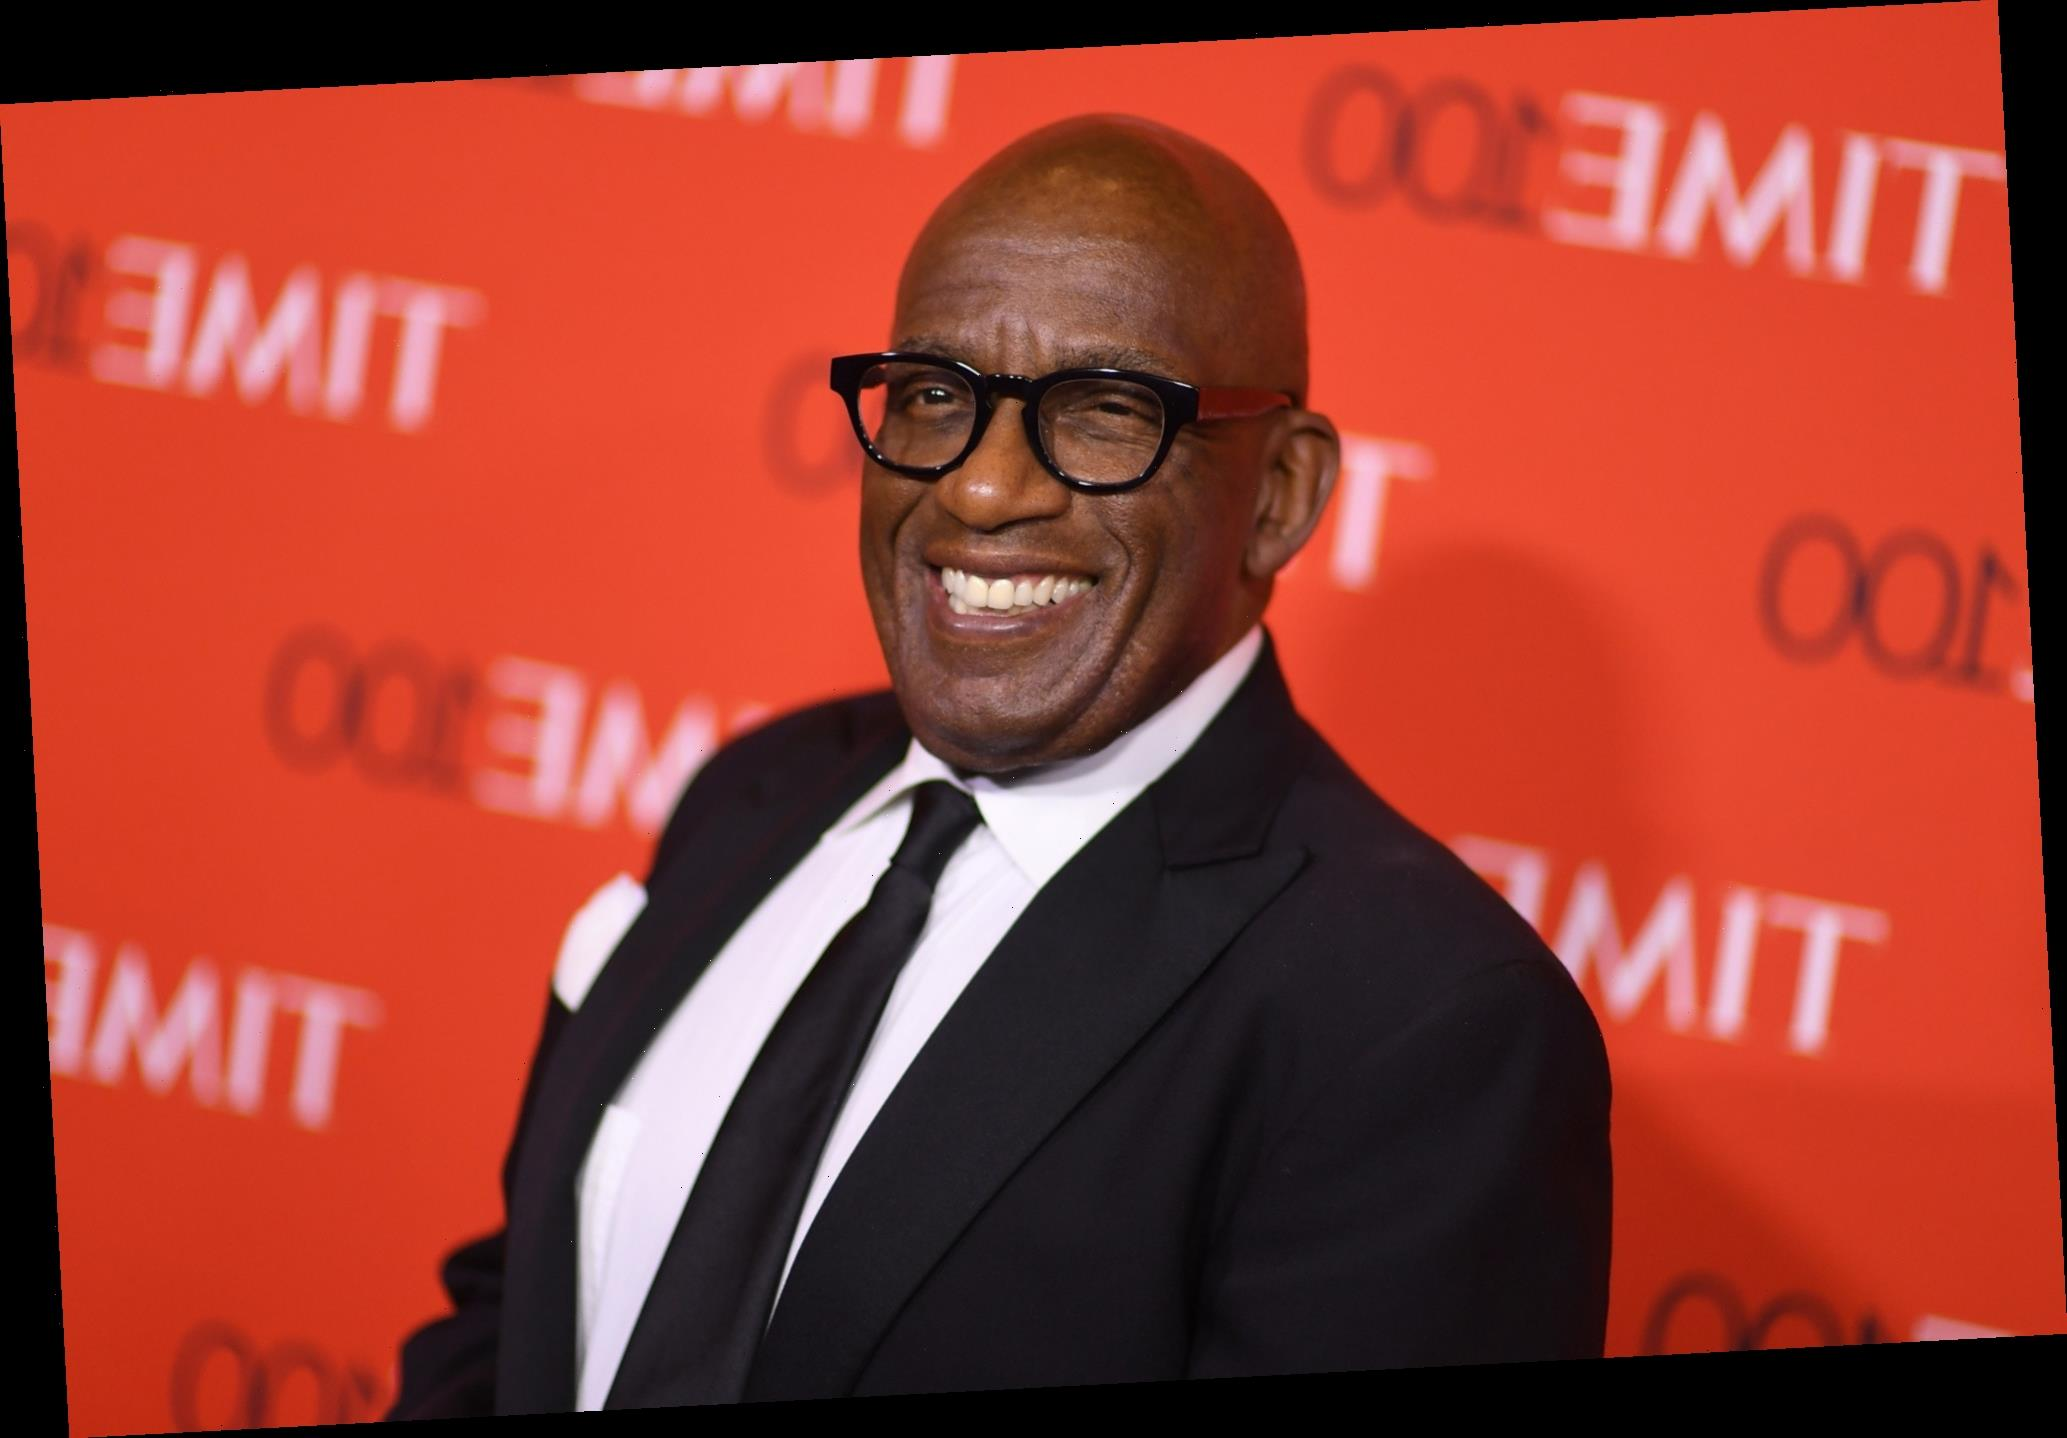 Al Roker announces his 'Today' return after prostate cancer surgery